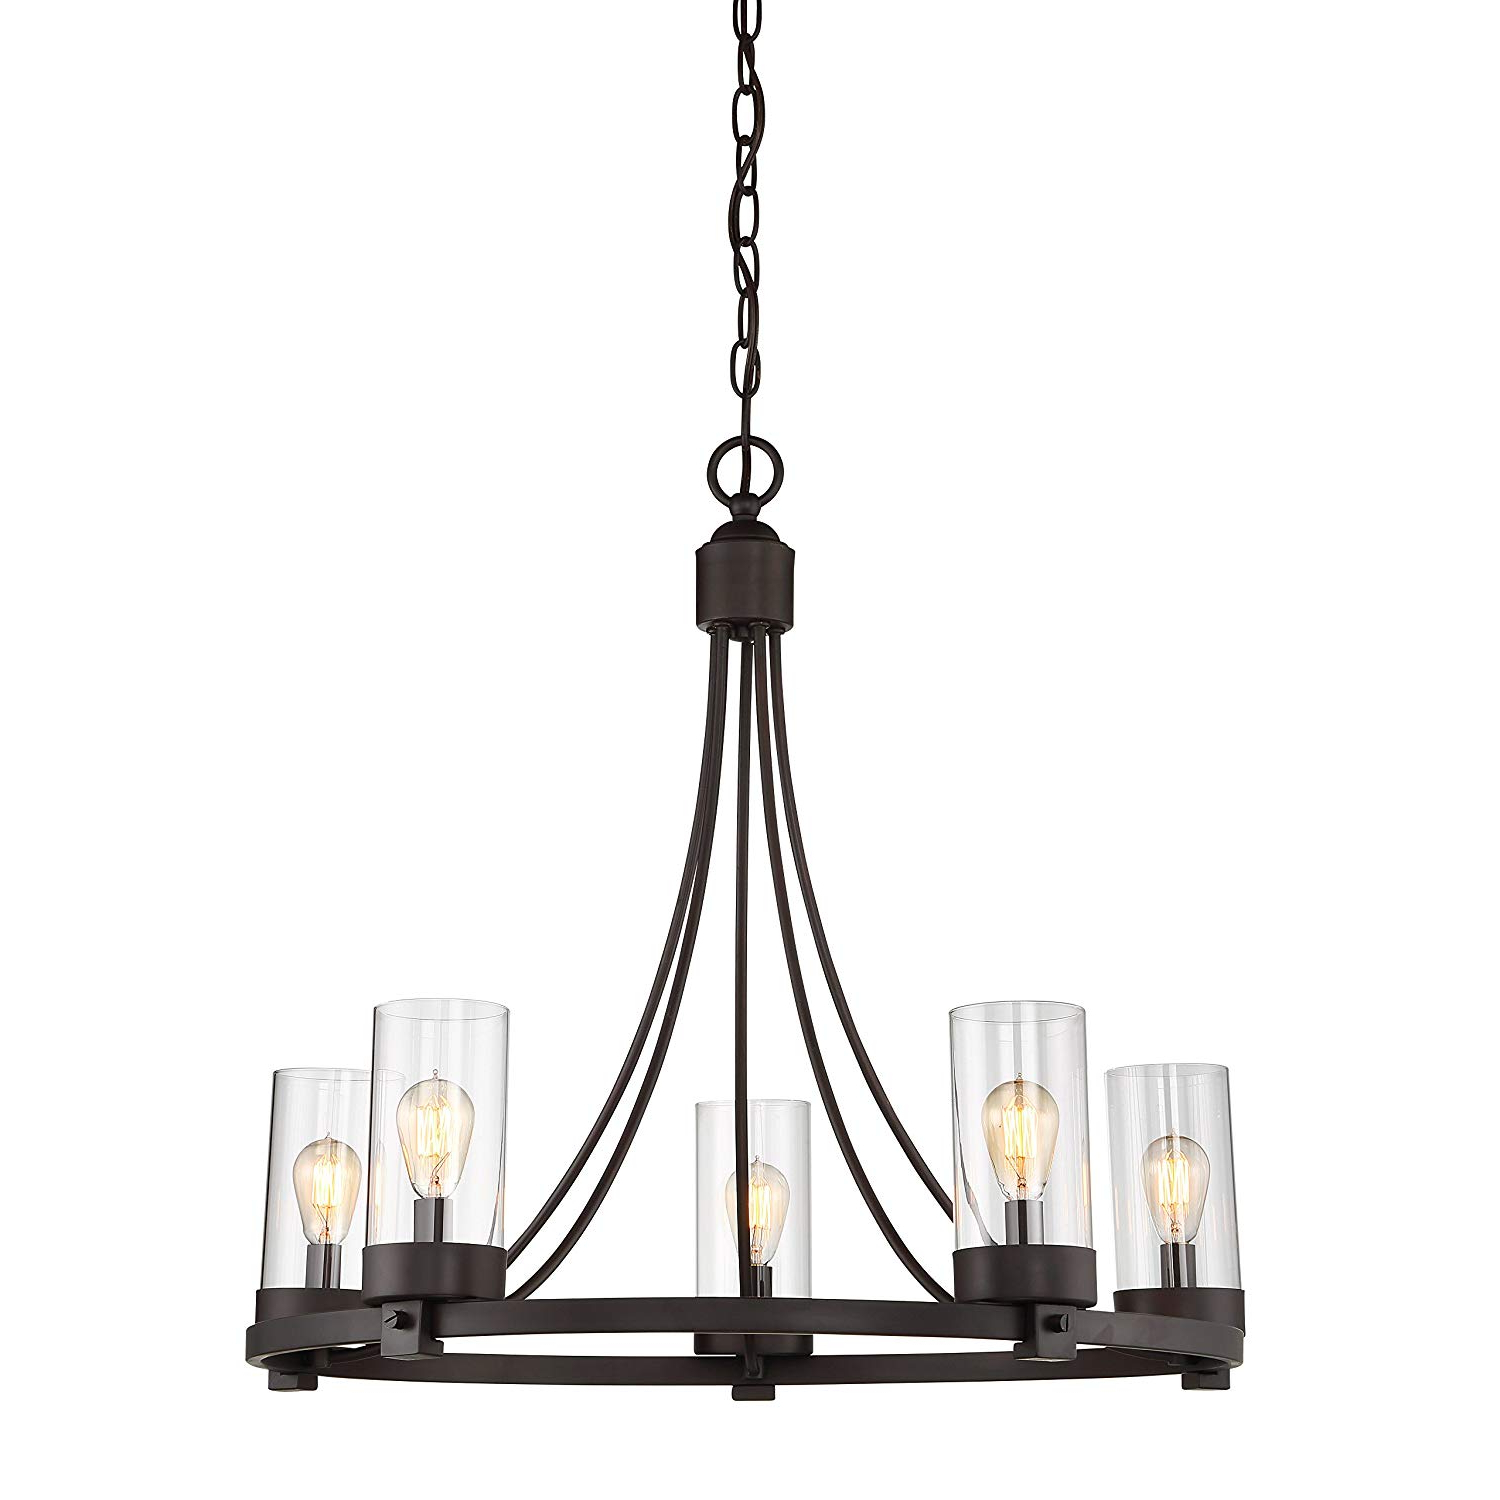 Agave Oil Rubbed Bronze 5 Light Candle Style Chandelier Intended For 2019 Giverny 9 Light Candle Style Chandeliers (View 3 of 25)